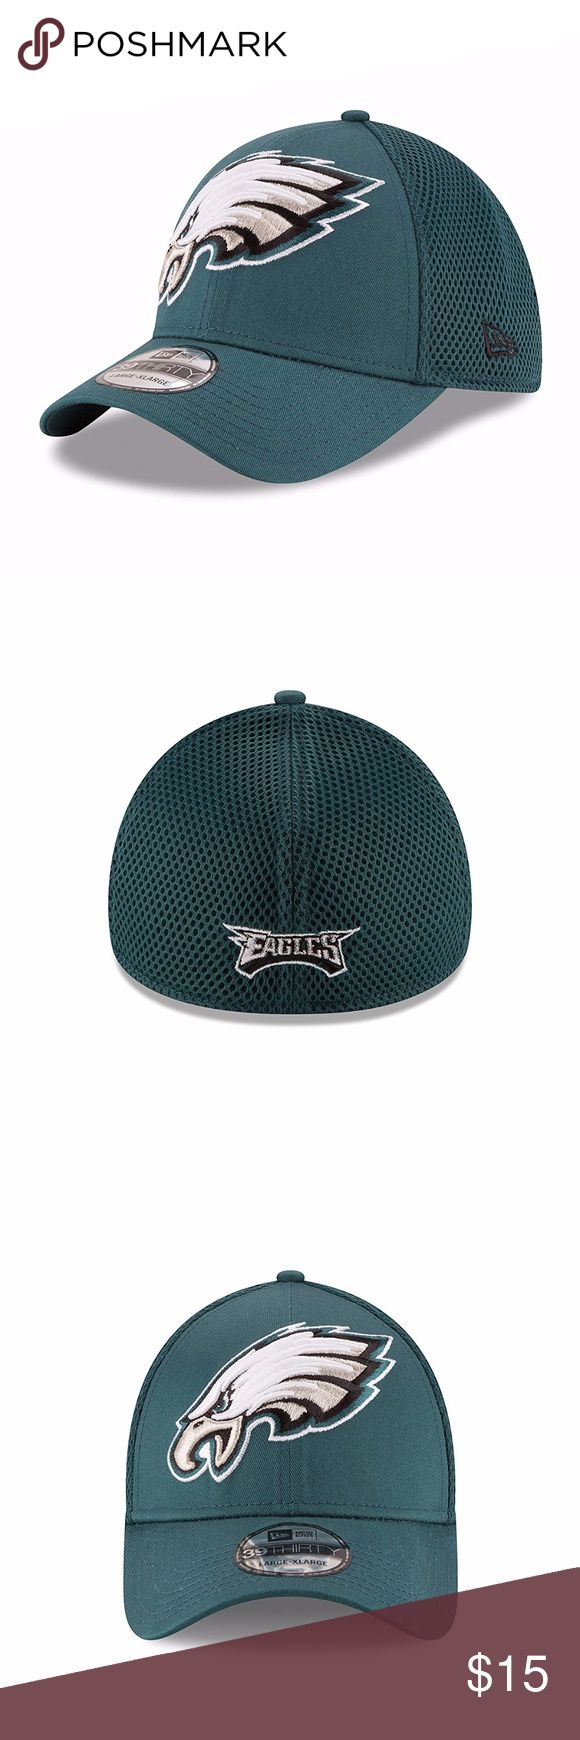 Philadelphia Eagles Mega Team Neo 39THIRTY Cap Brand New Officially Licensed with tags. This Philadelphia Eagles New Era Mega Team Neo 39THIRTY features bold embroidered Eagles logo on the front and embroidered name on the back with stretch fit.  Lg-XLG (7 5/8- 7 3/4)(60.6cm-63.5cm) New Era Accessories Hats